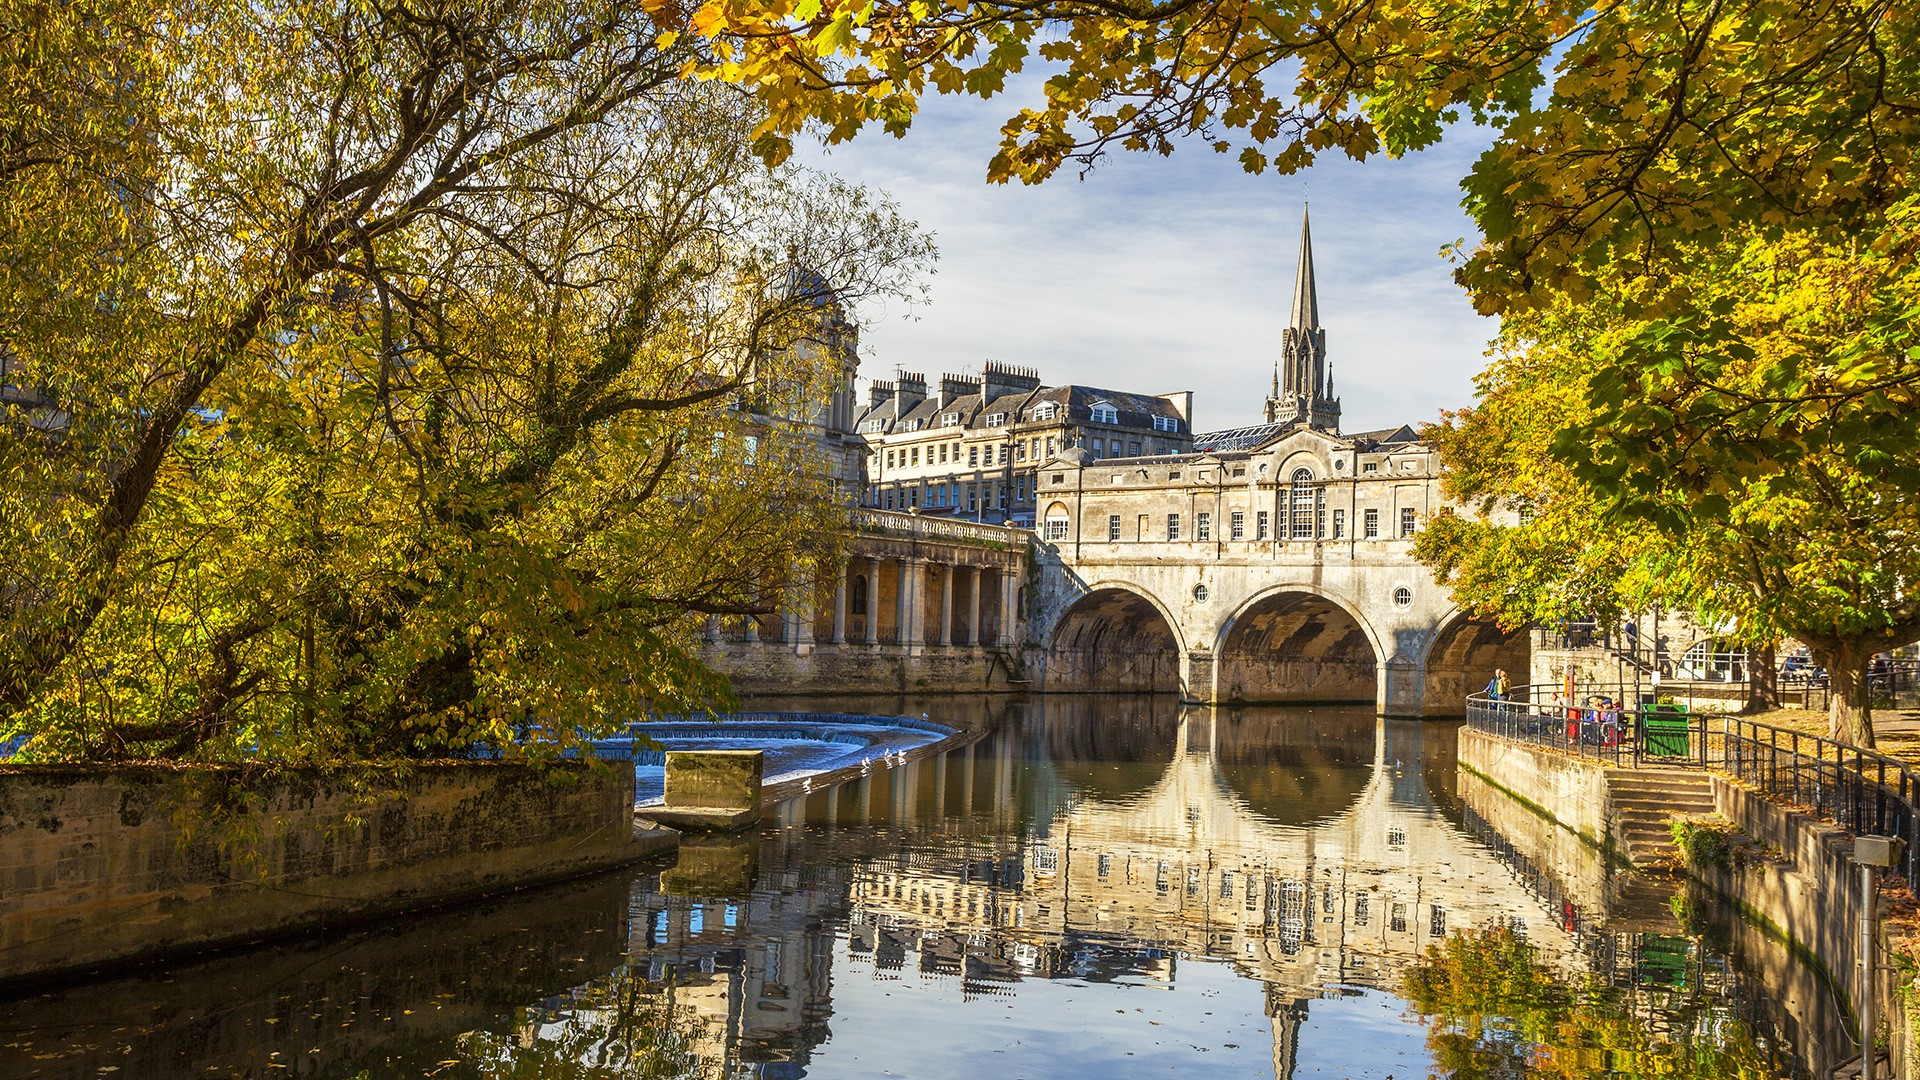 Pulteney Bridge, River Avon, Bath, Somerset, England, UK